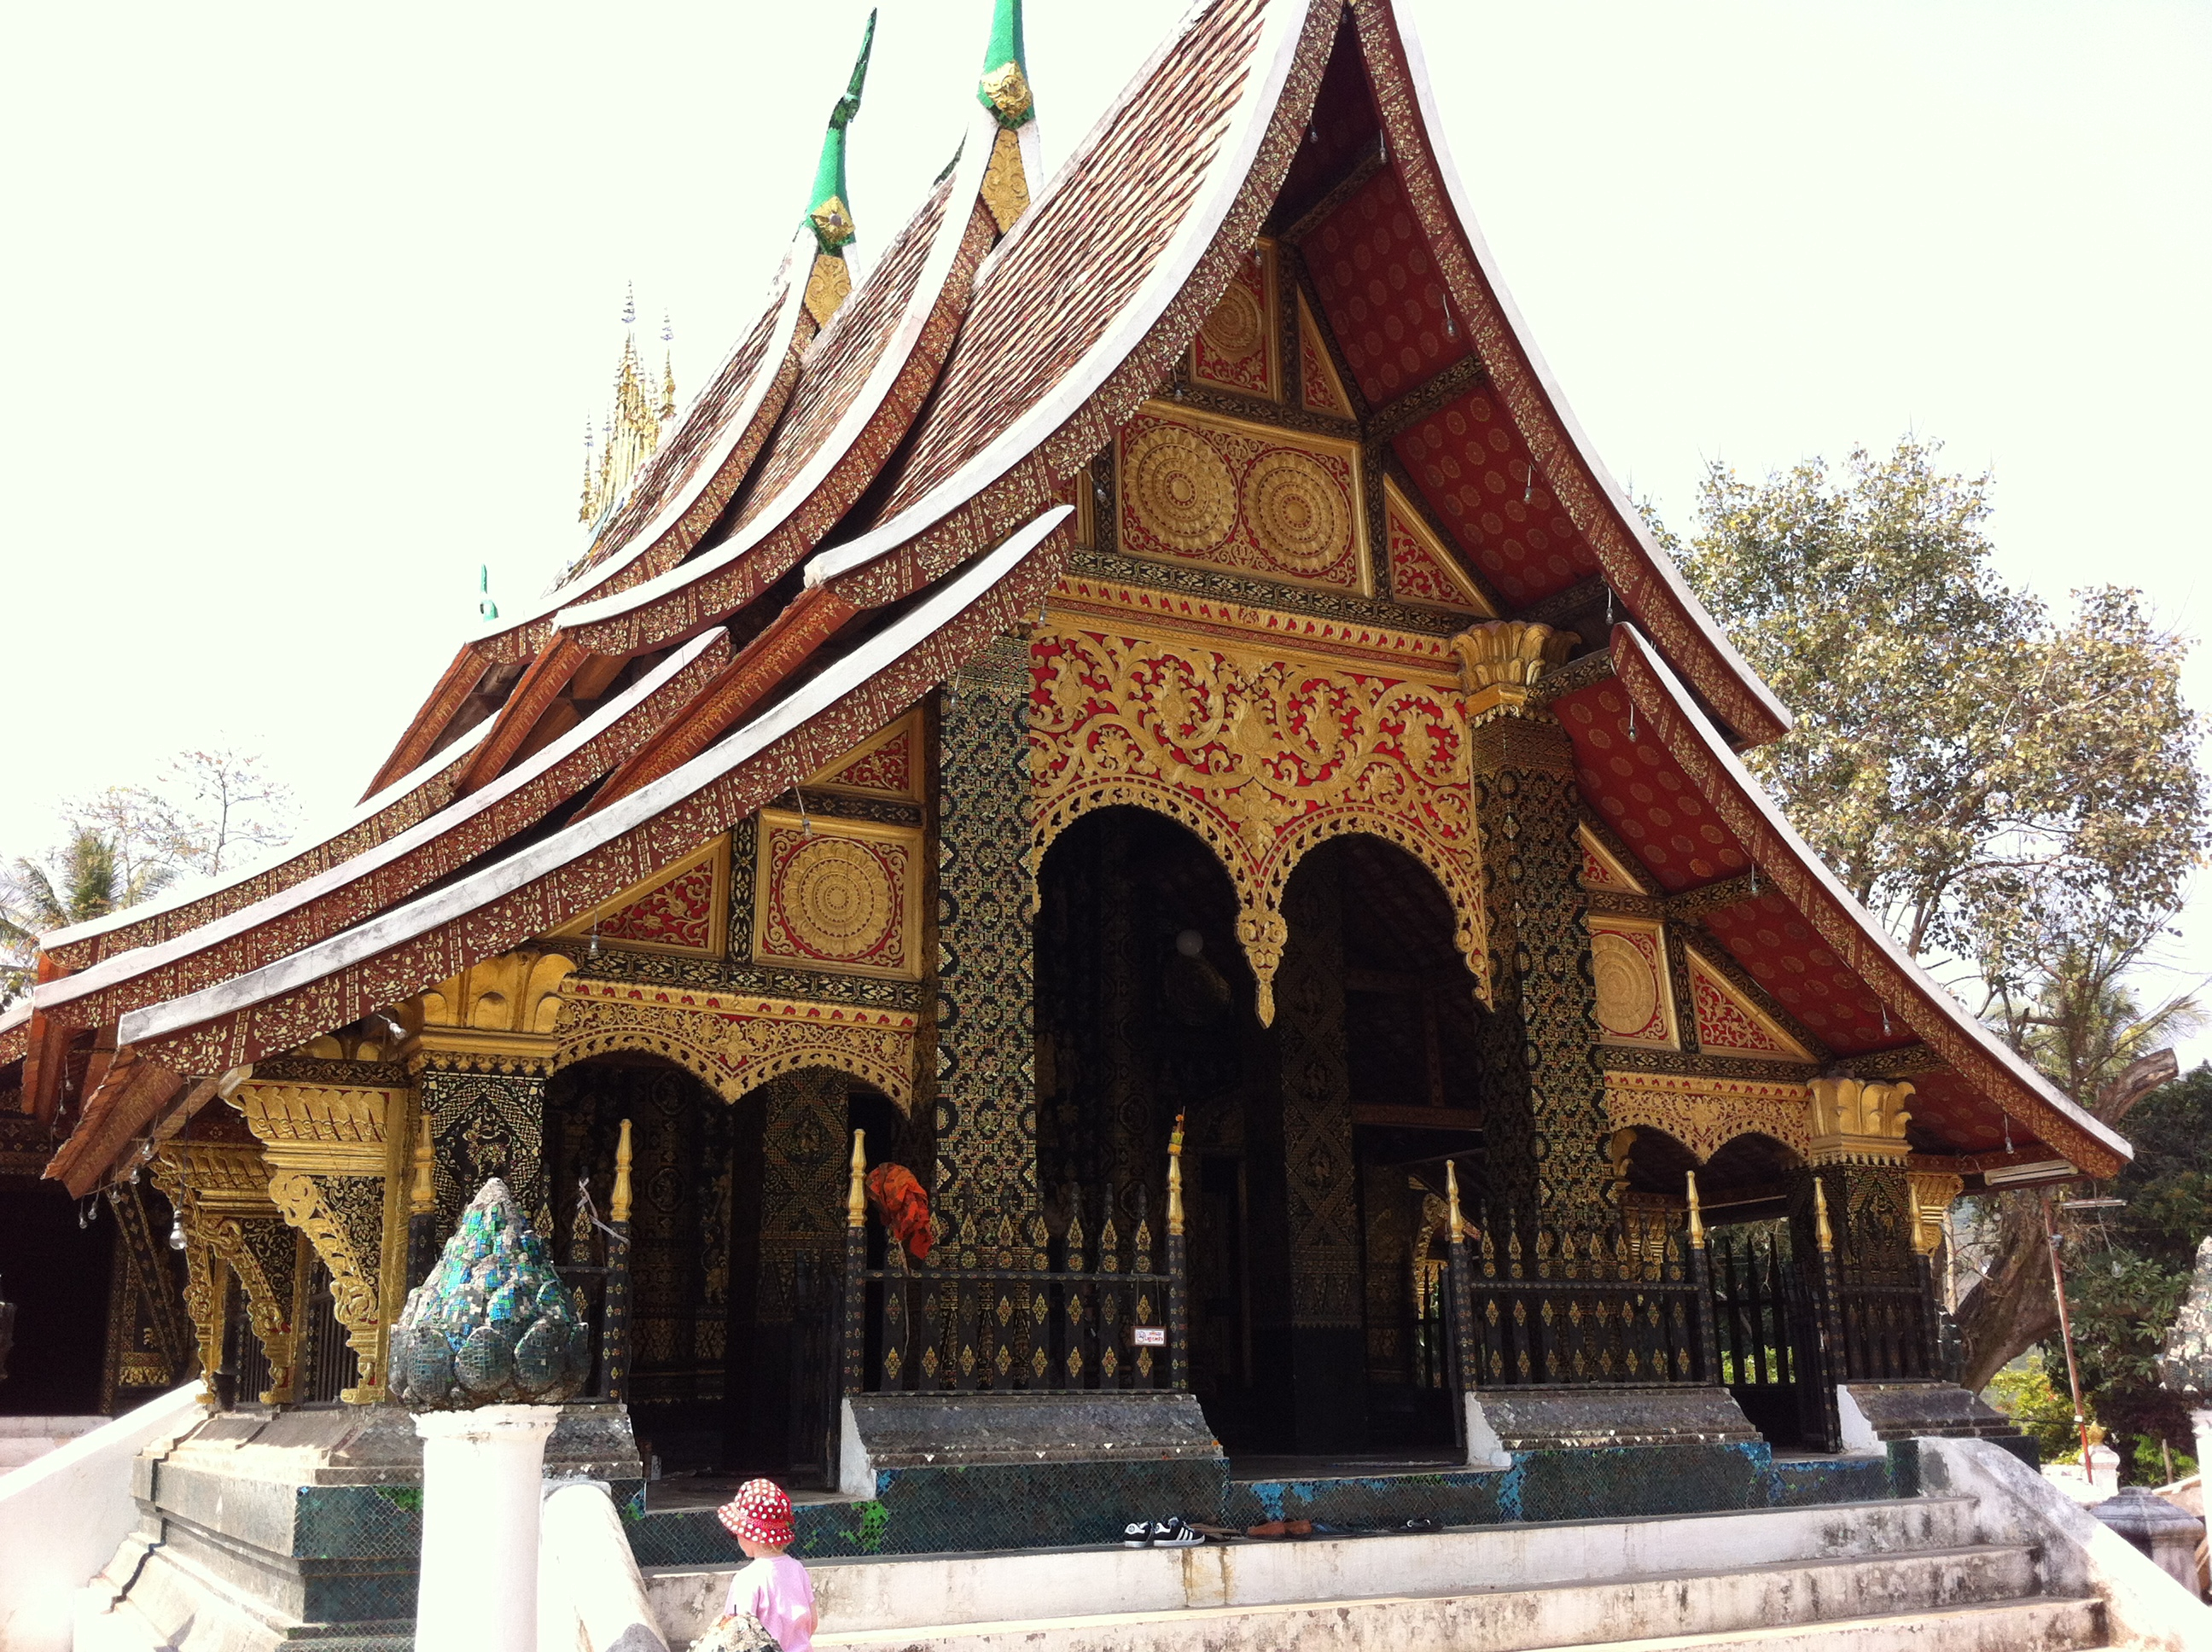 Wat Xieng Thong, or the Golden Temple, Luang Prabang (photo Catherine Clover, 2013)